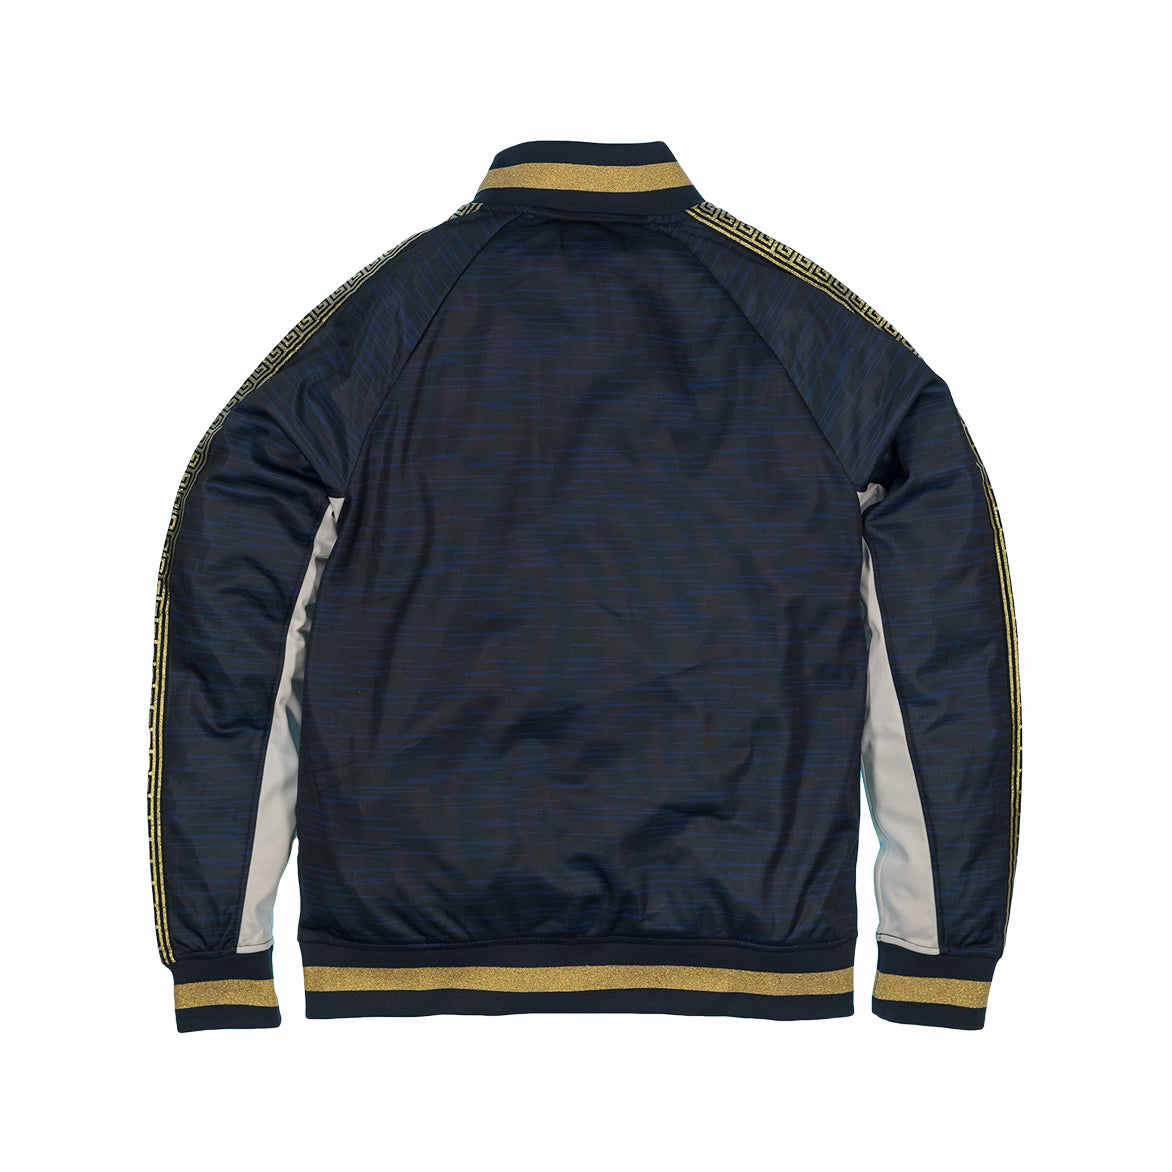 GOLD TAPE TRACK JACKET - NAVY